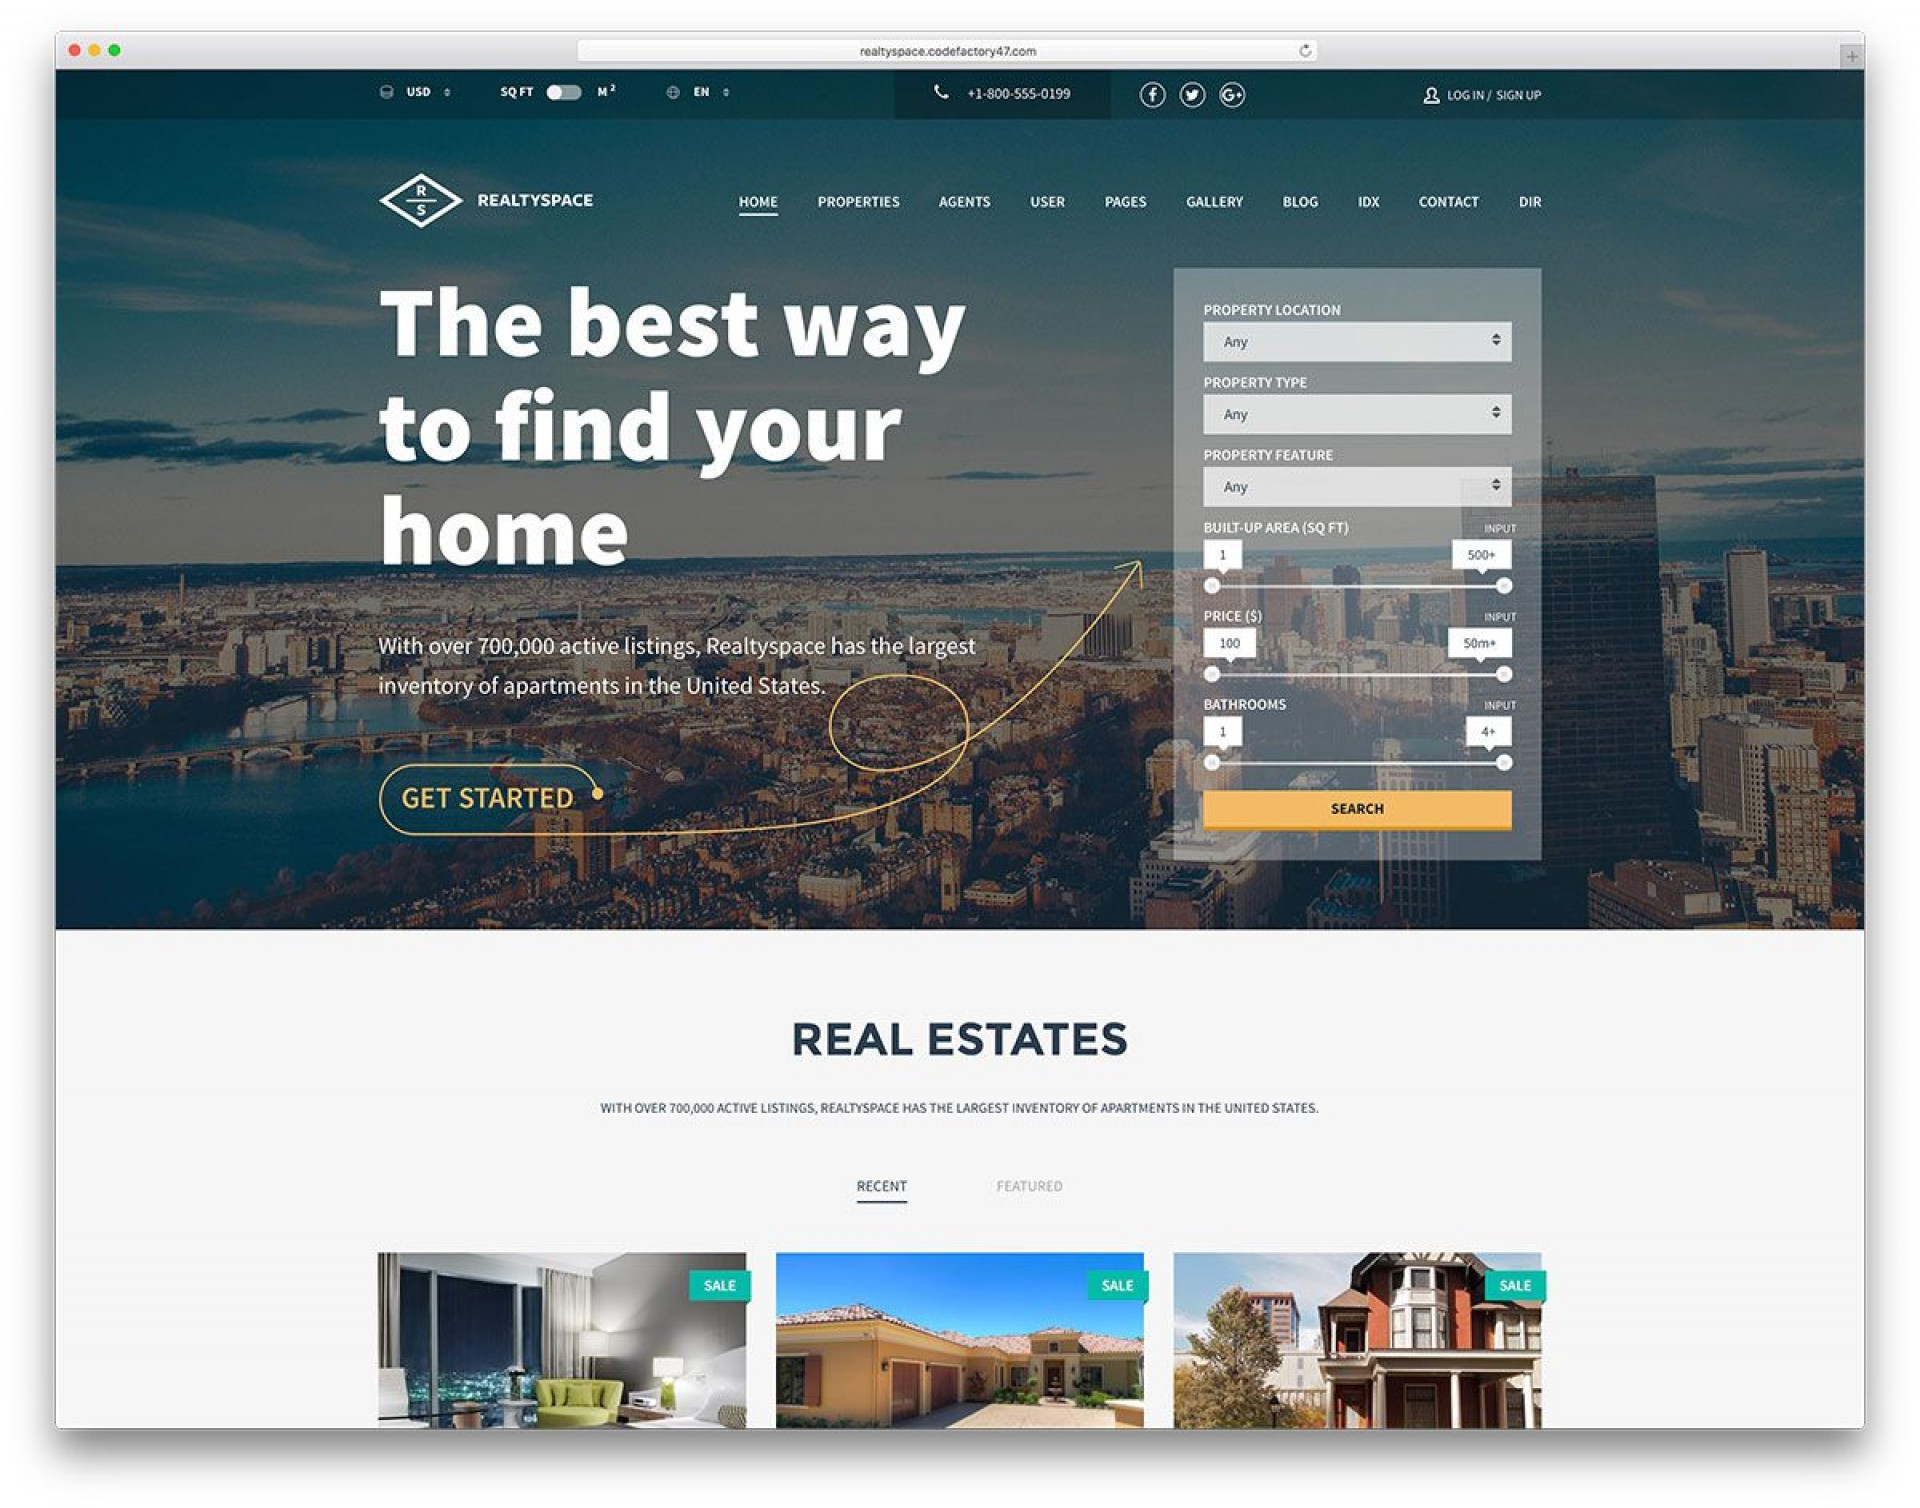 006 Wondrou Real Estate Agent Website Template Highest Clarity  Templates Agency Responsive Free Download Company Web1920